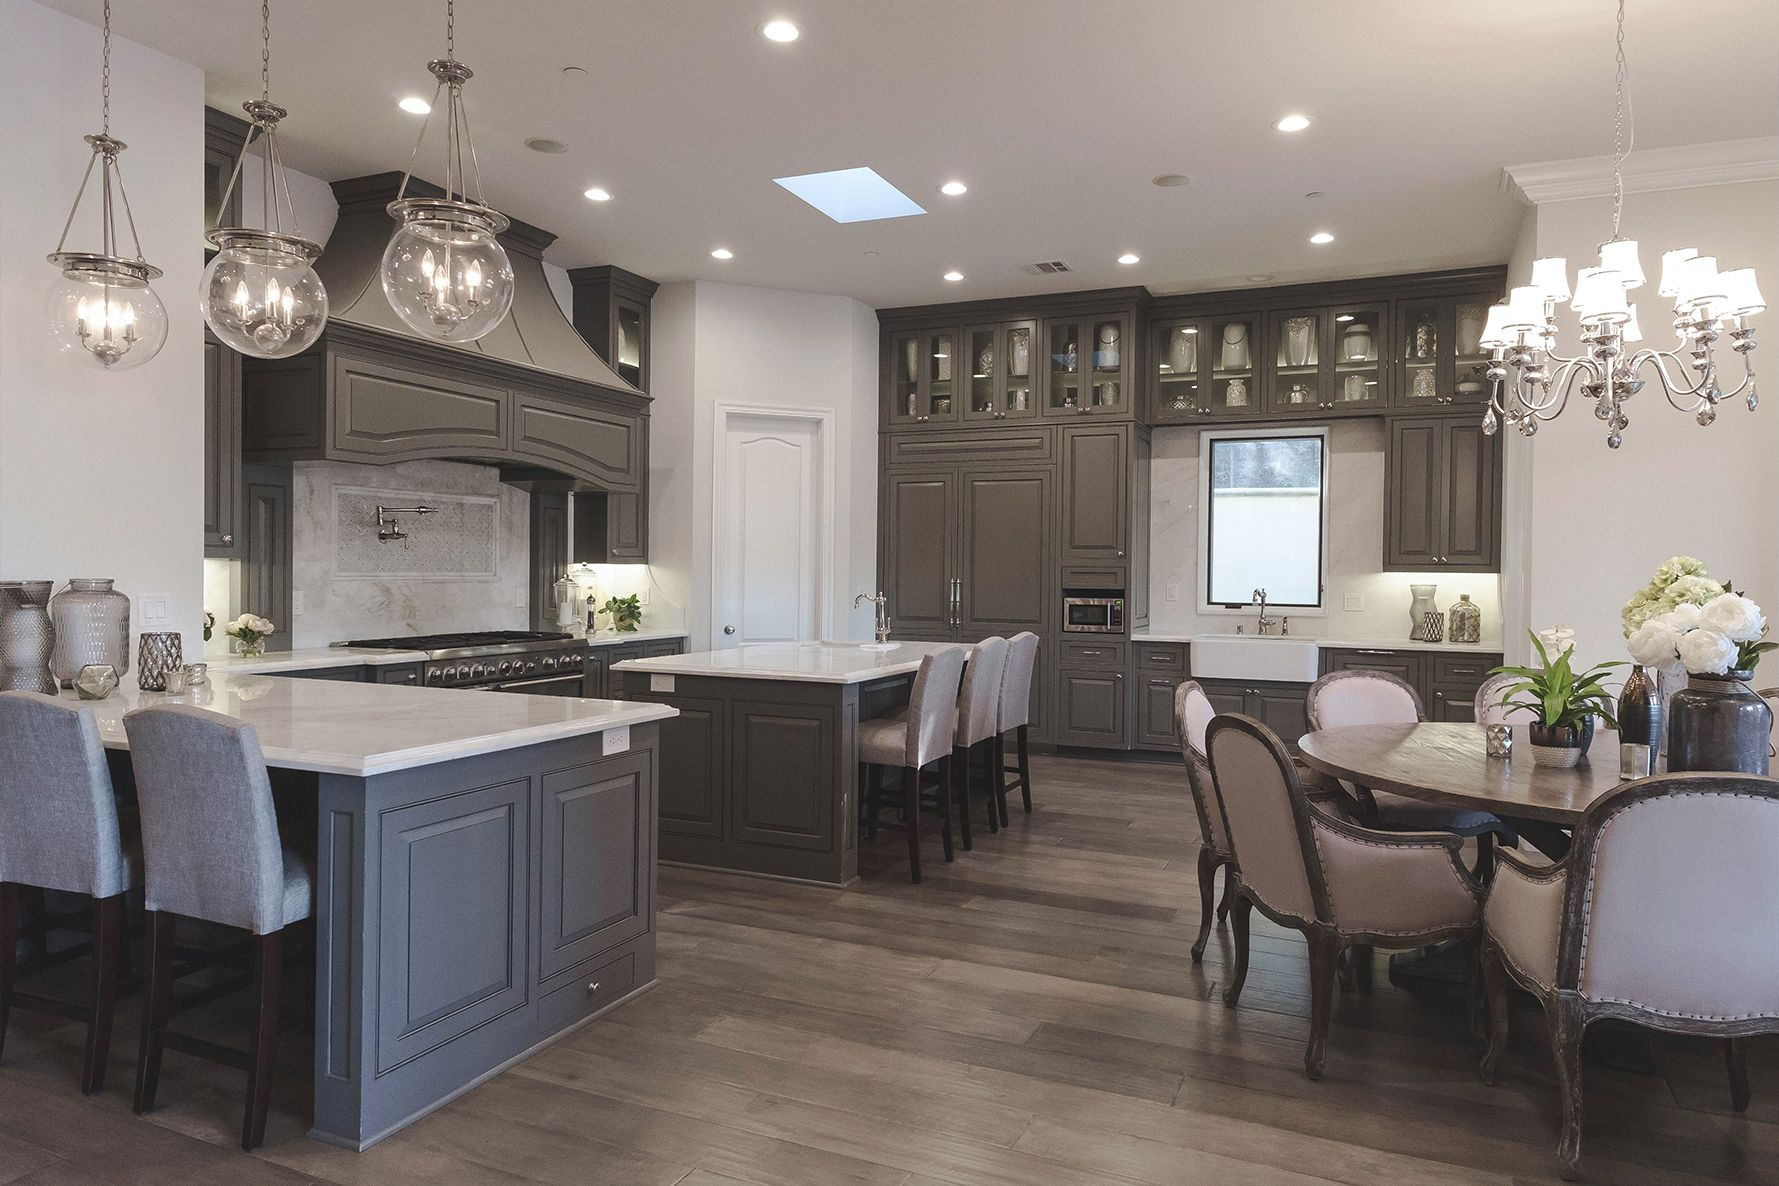 Best Jkid Project Kitchen Residential Renovations Home Decor 400 x 300